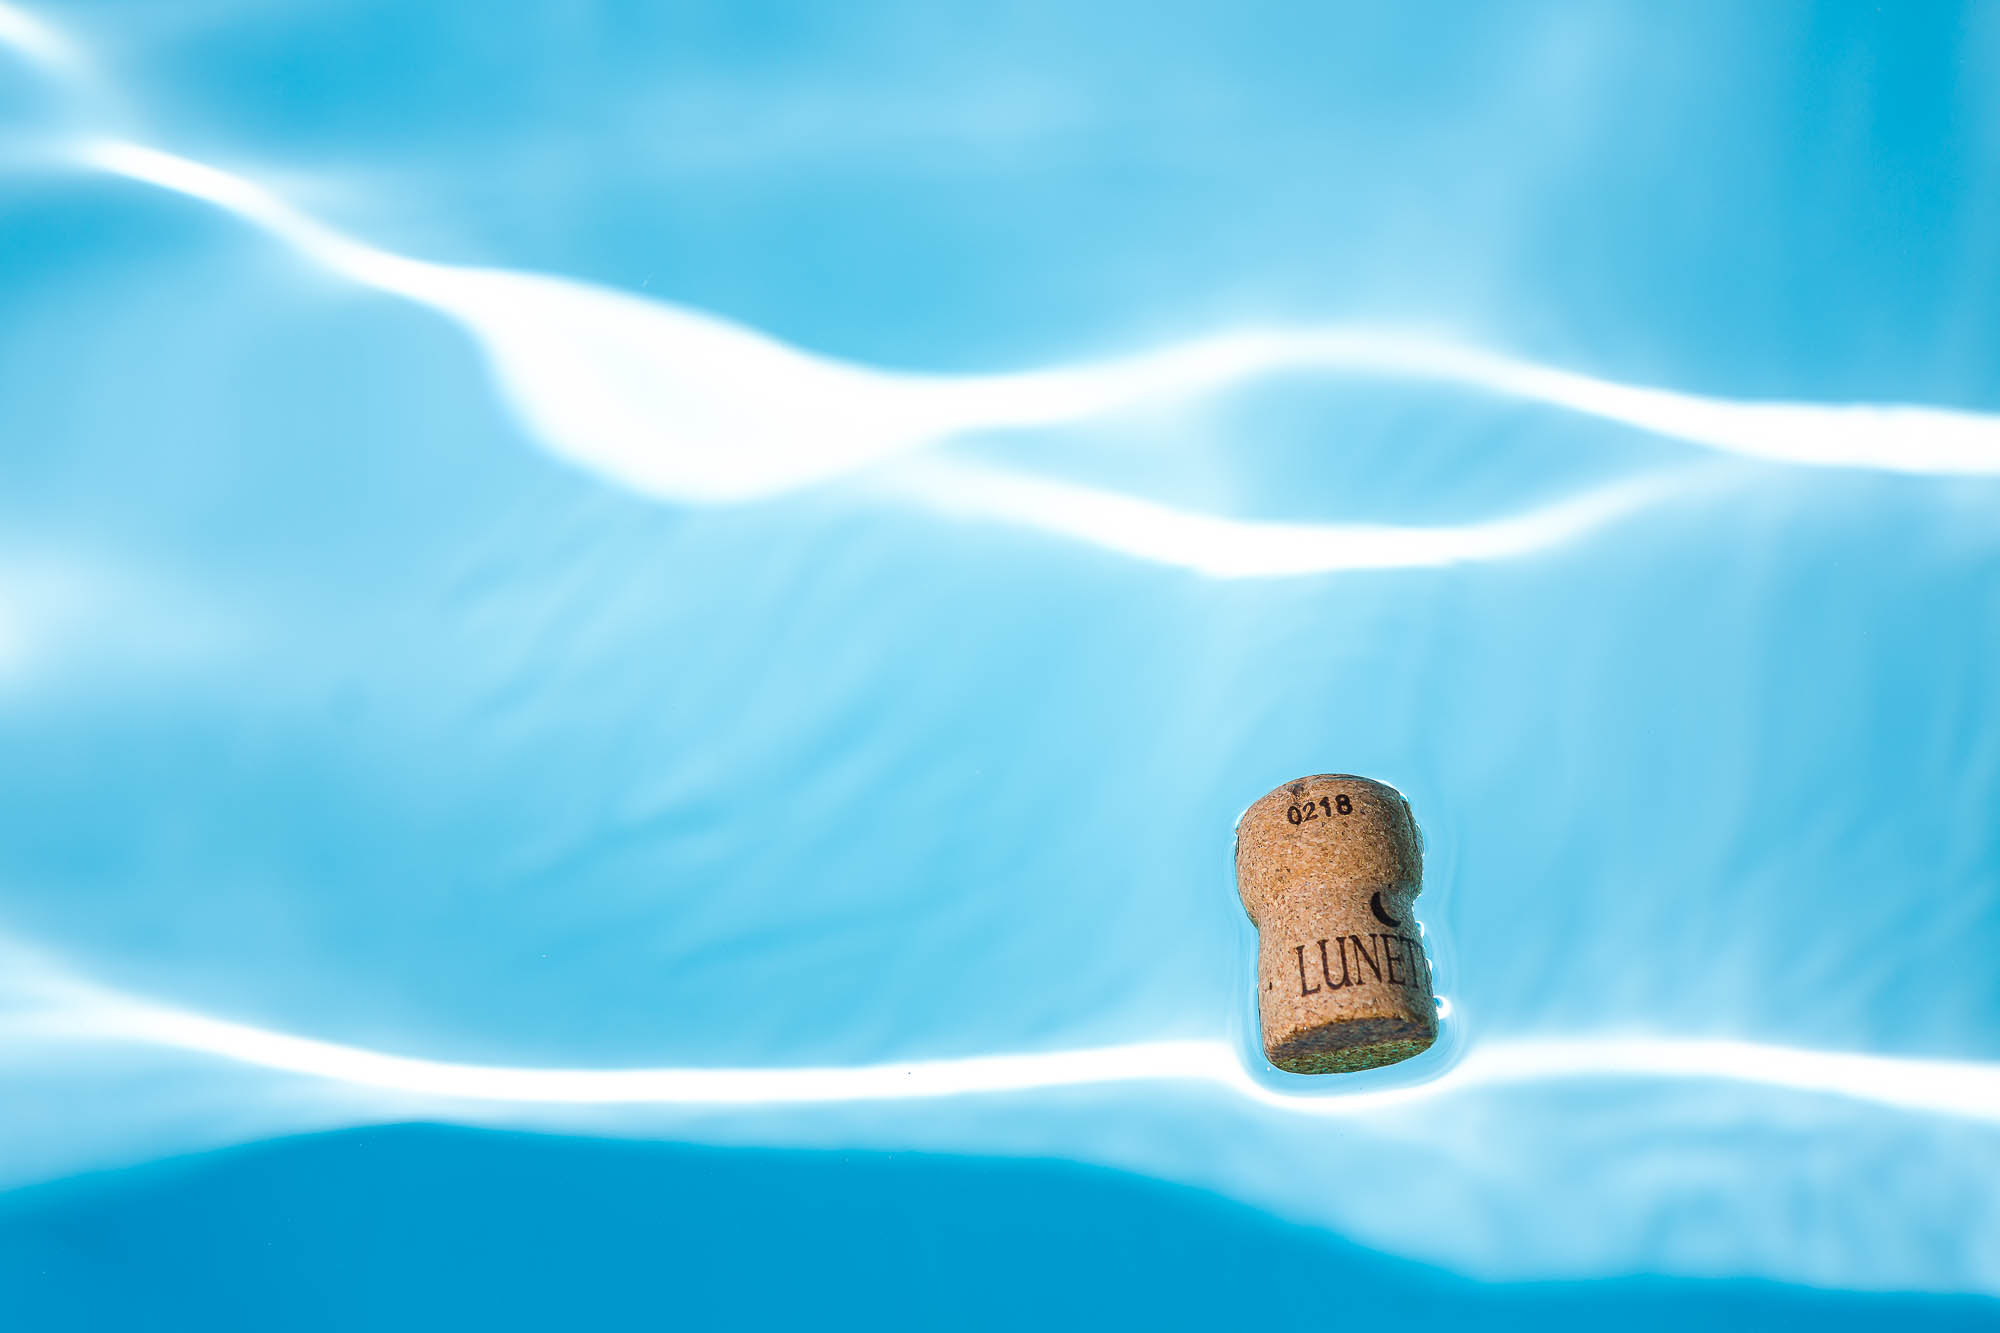 Champagne cork floating in the destination wedding swimming pool. Photo by Elliot Nichol Photography.